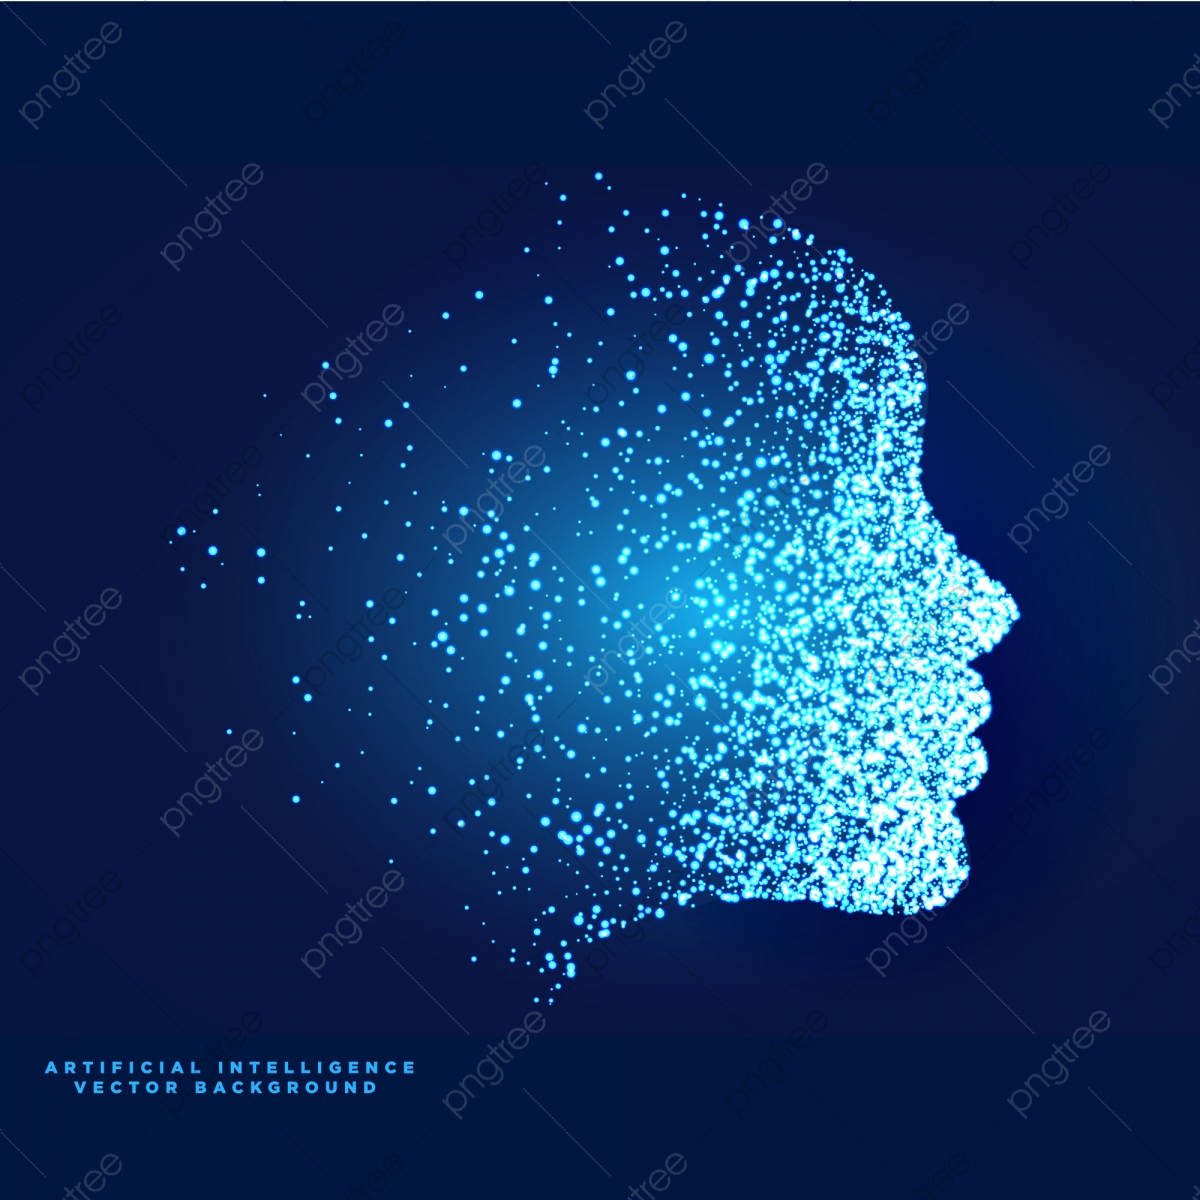 Artificial Intelligence Vector, Abstract, Technology, Blue PNG and.